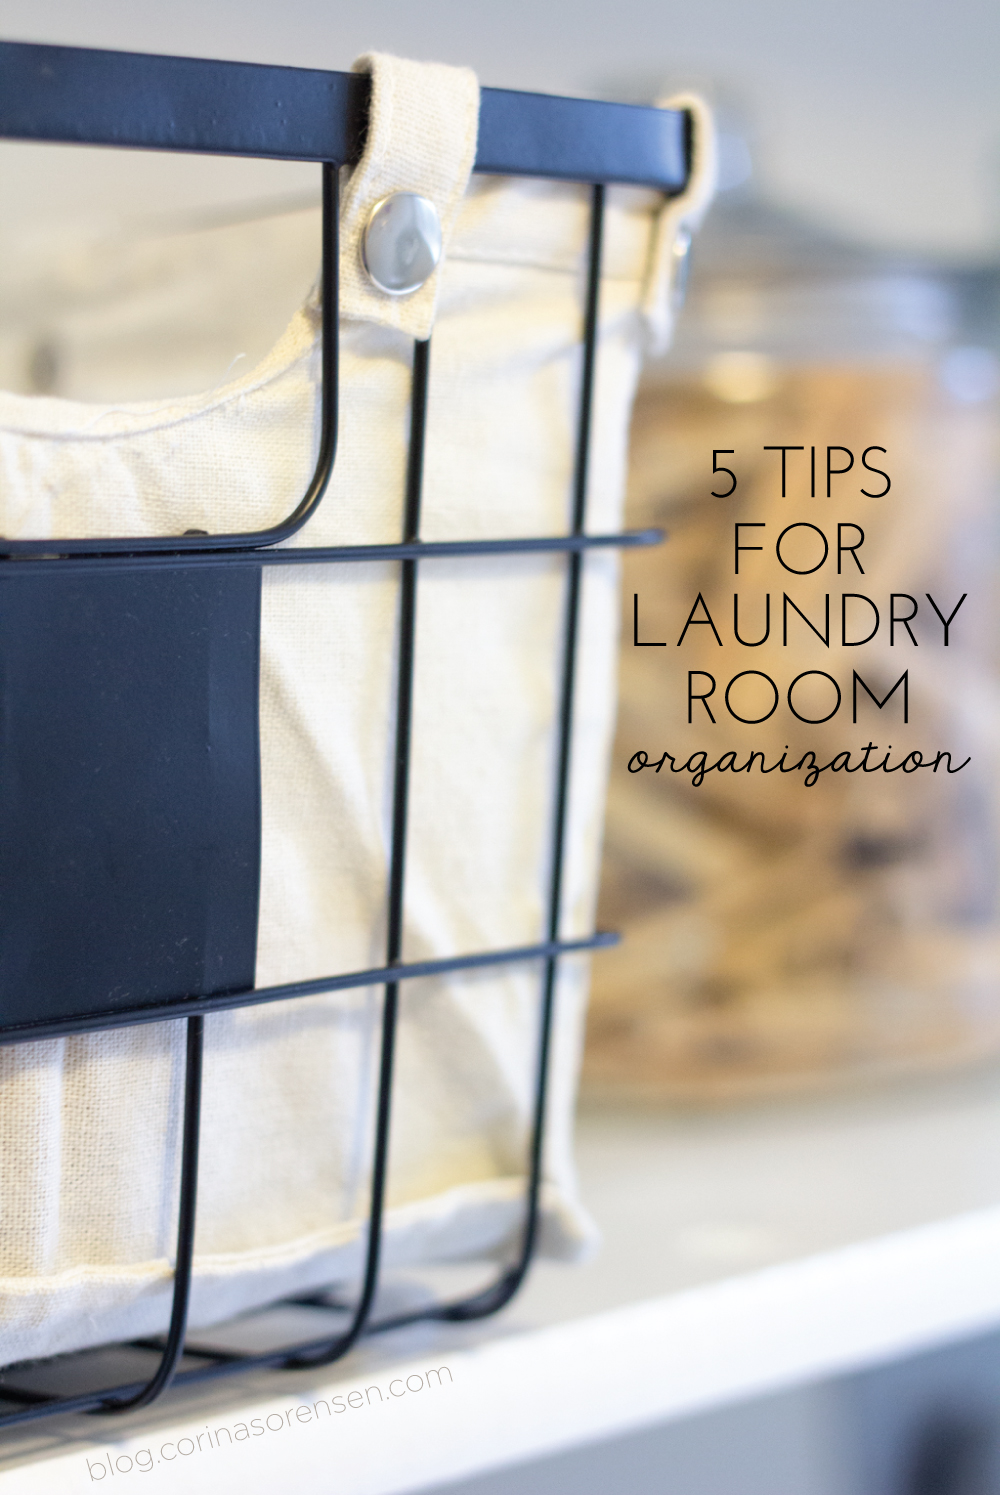 5 Tips for Laundry Room Organization #SnuggleUpMoments #CollectiveBias #shop